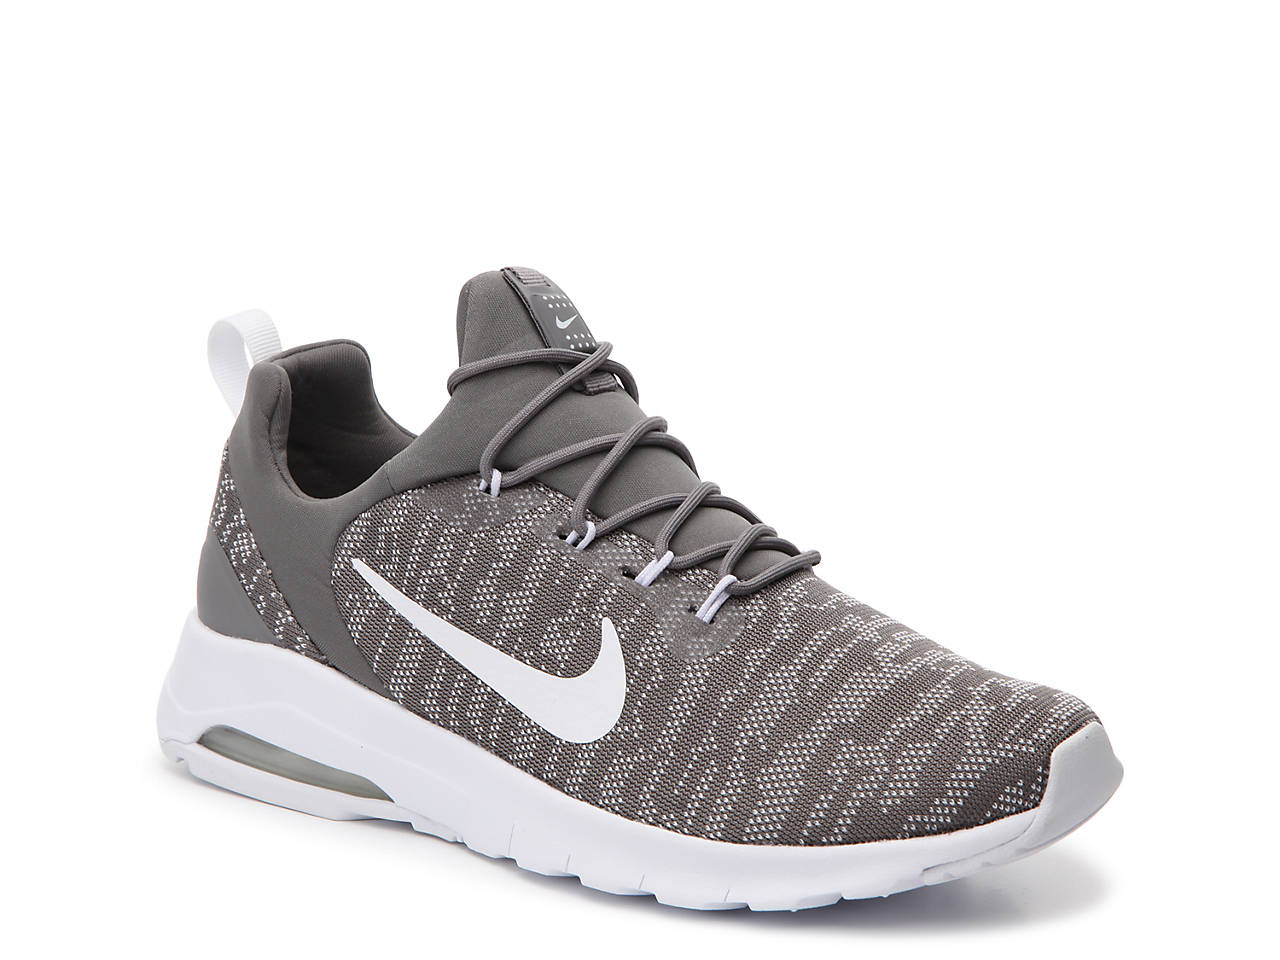 new styles 2997b 9ad0d ... mens nike casual shoes lifestyle running 7ae58 9da09  sweden air max  motion racer sneaker womens c8717 93727